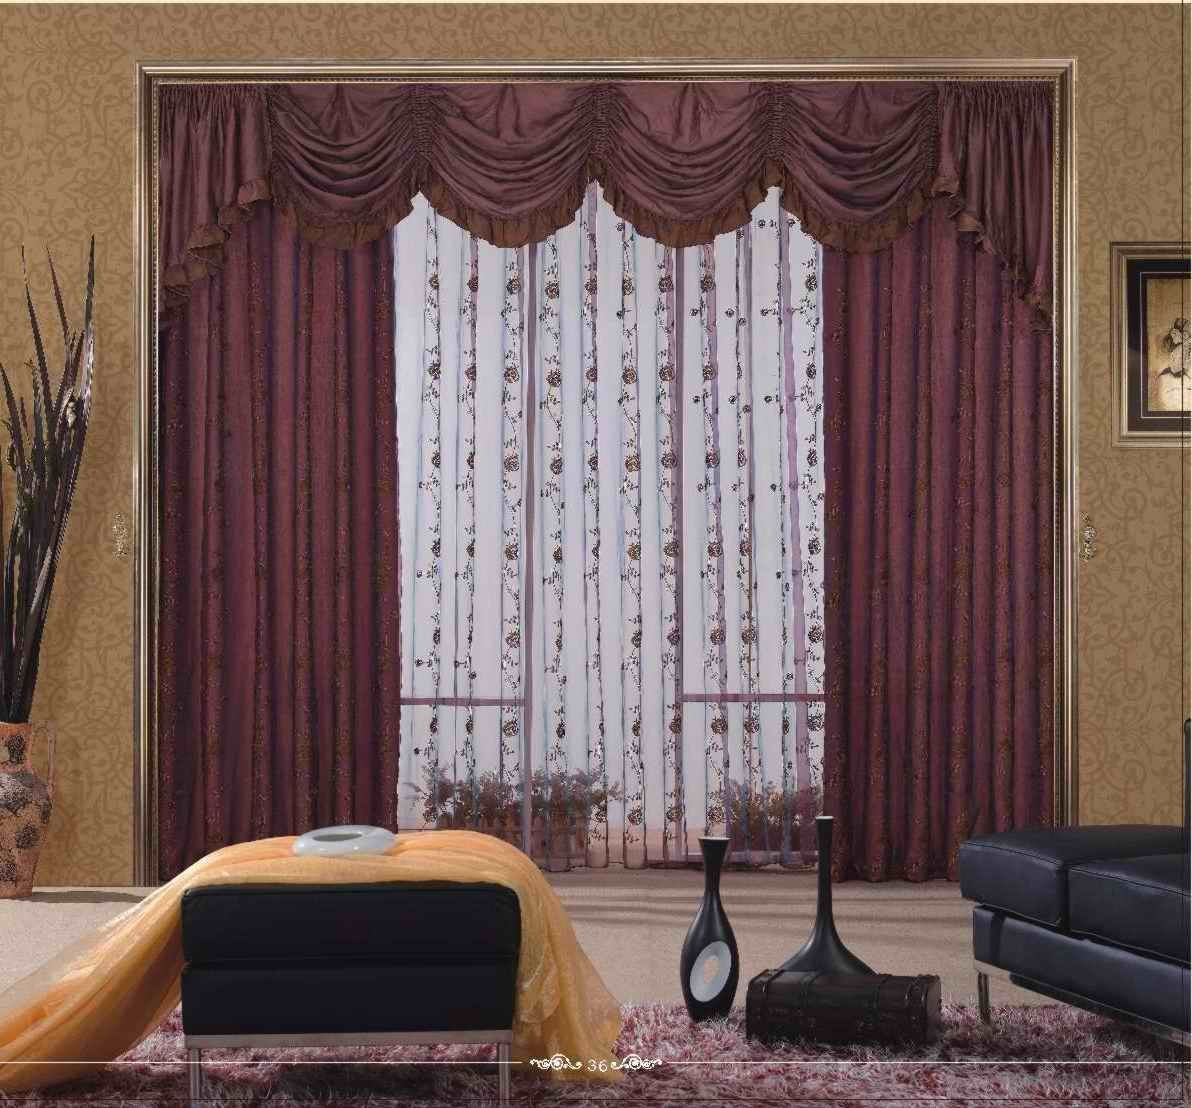 Living Room Curtain Design Arab Style Curtains  Buy Arab Style Curtainseuropean Style